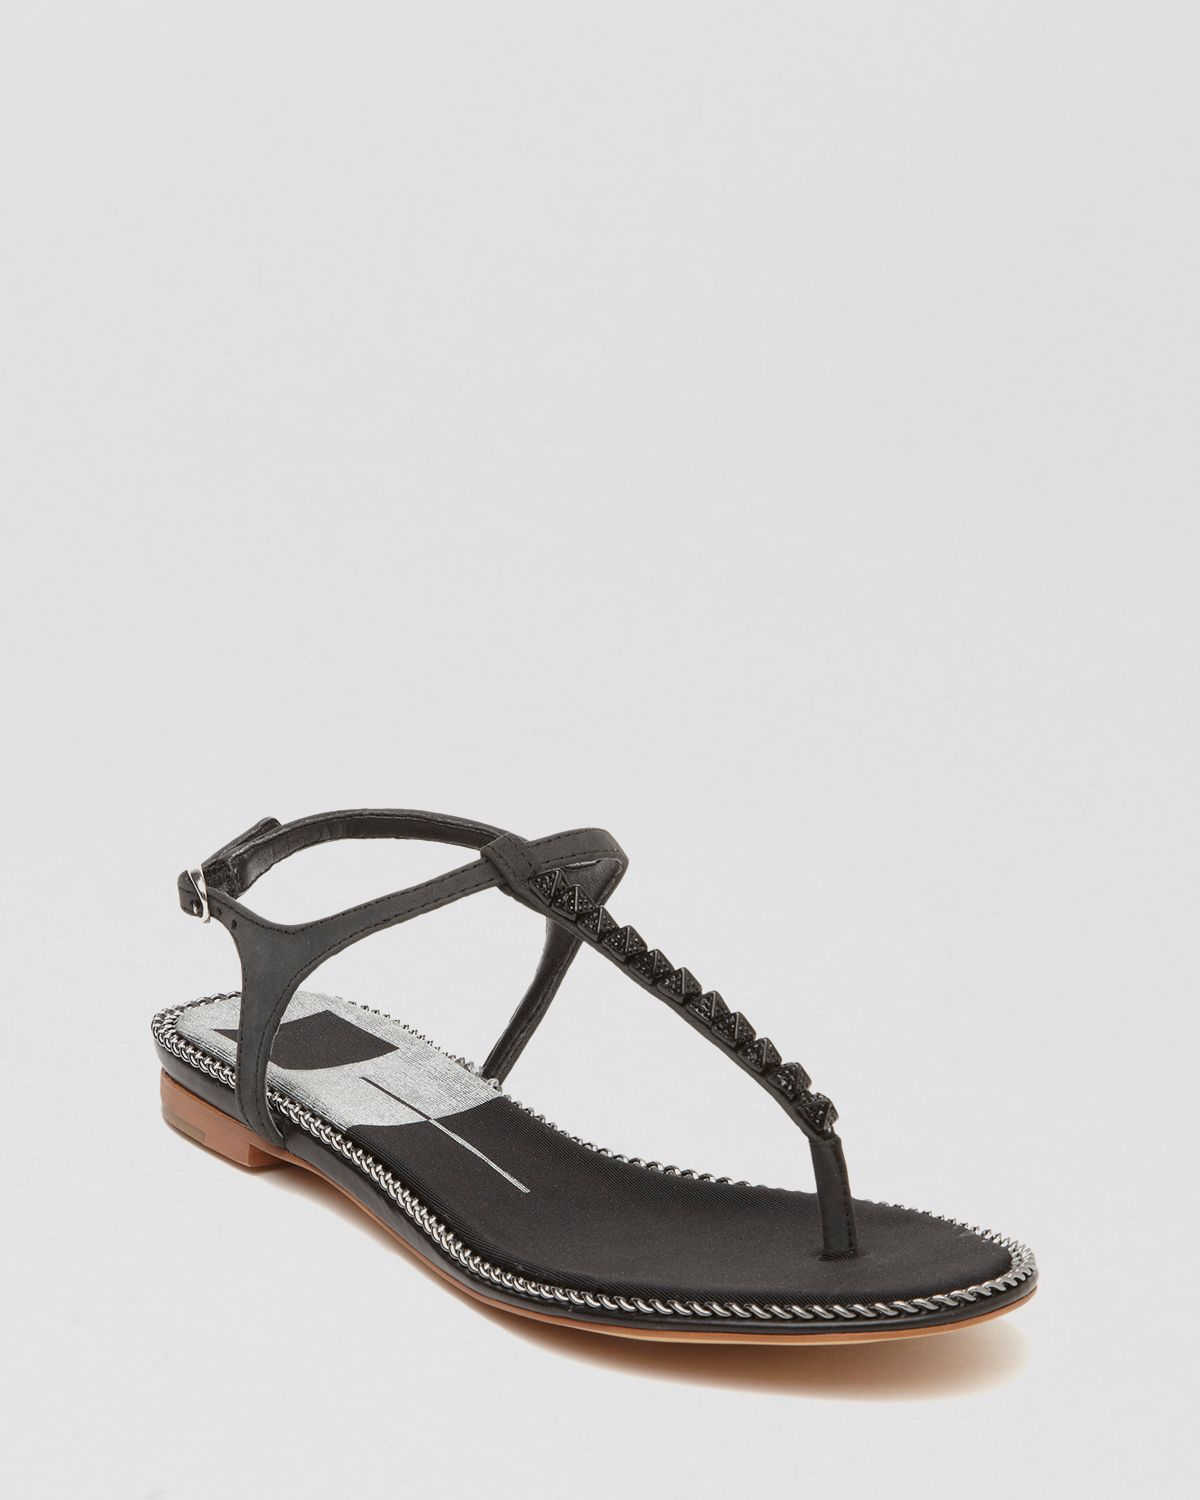 Lyst - Dolce Vita Flat Thong Sandals Ensley Studded T Strap in Black